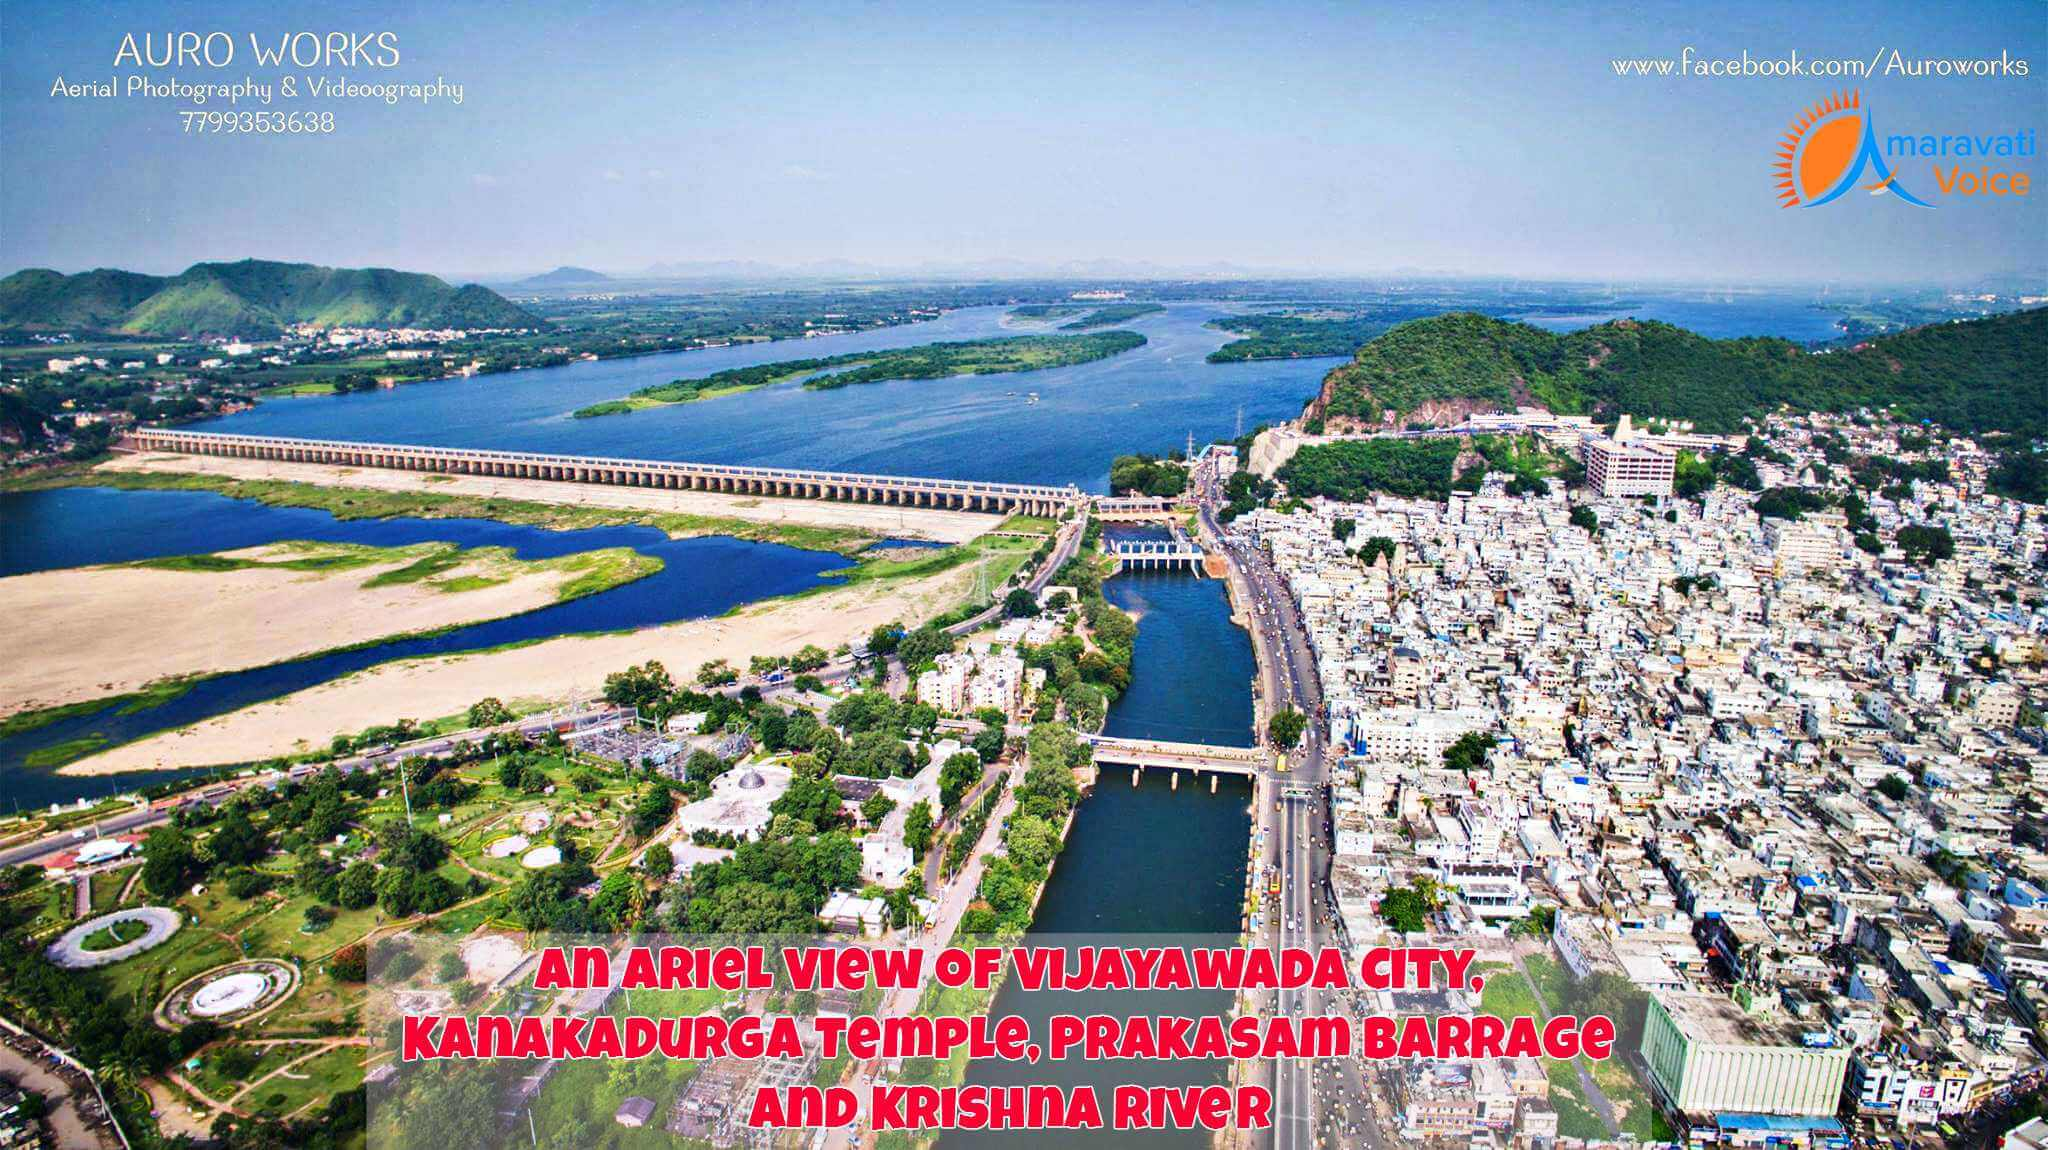 Ariel View of Vijayawada City, Kanaka Durga Temple, Prakasam Barrage